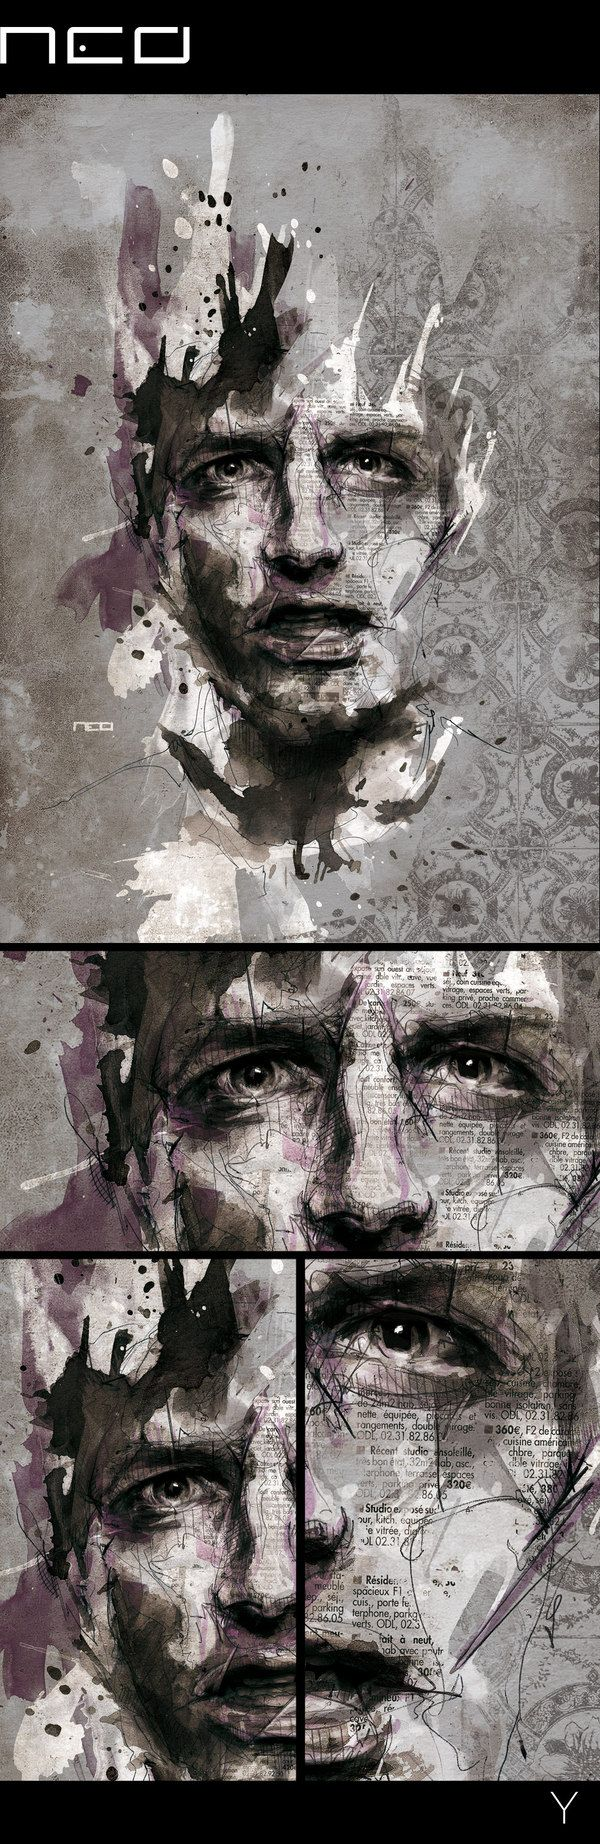 Y by Florian NICOLLE, via Behance